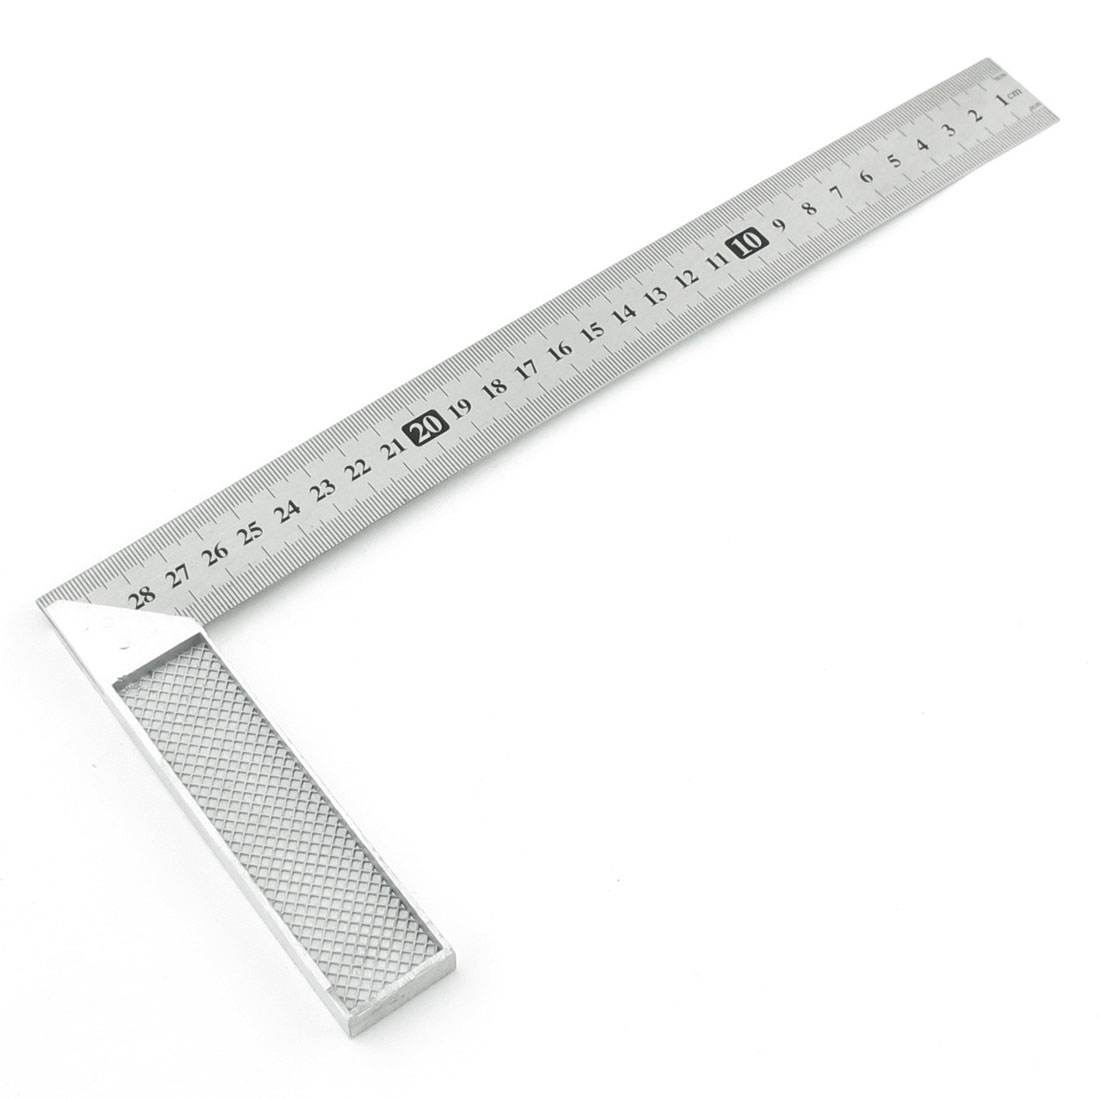 30cm 12 Inch 90 Degree Right Angle L Shape Square Ruler Tool